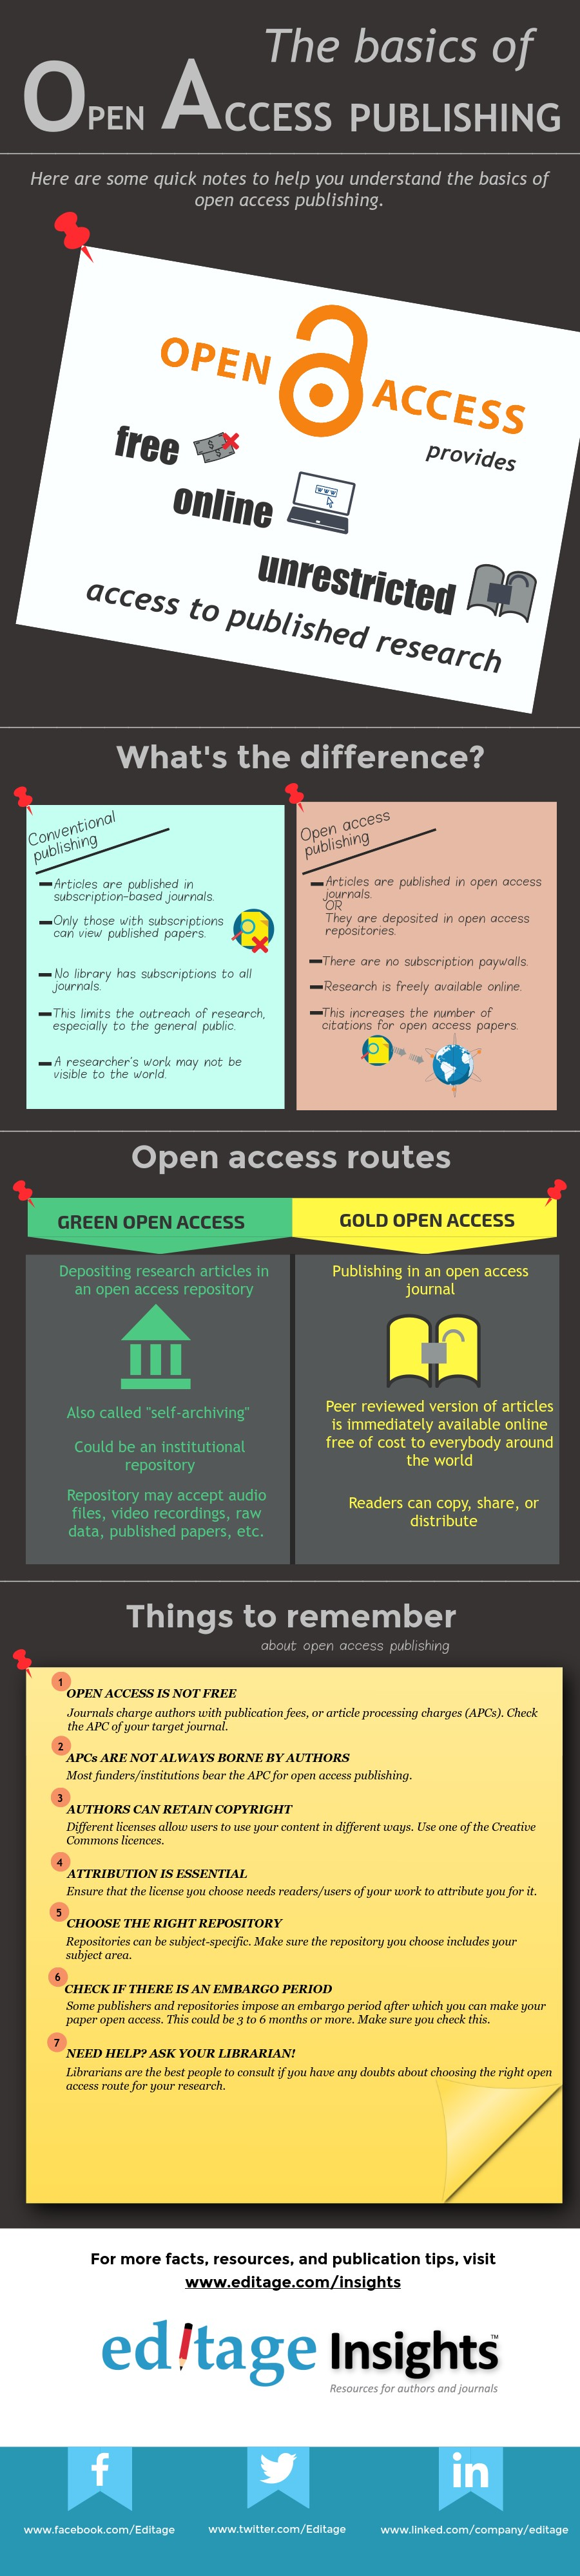 Open access publishing The basics of open